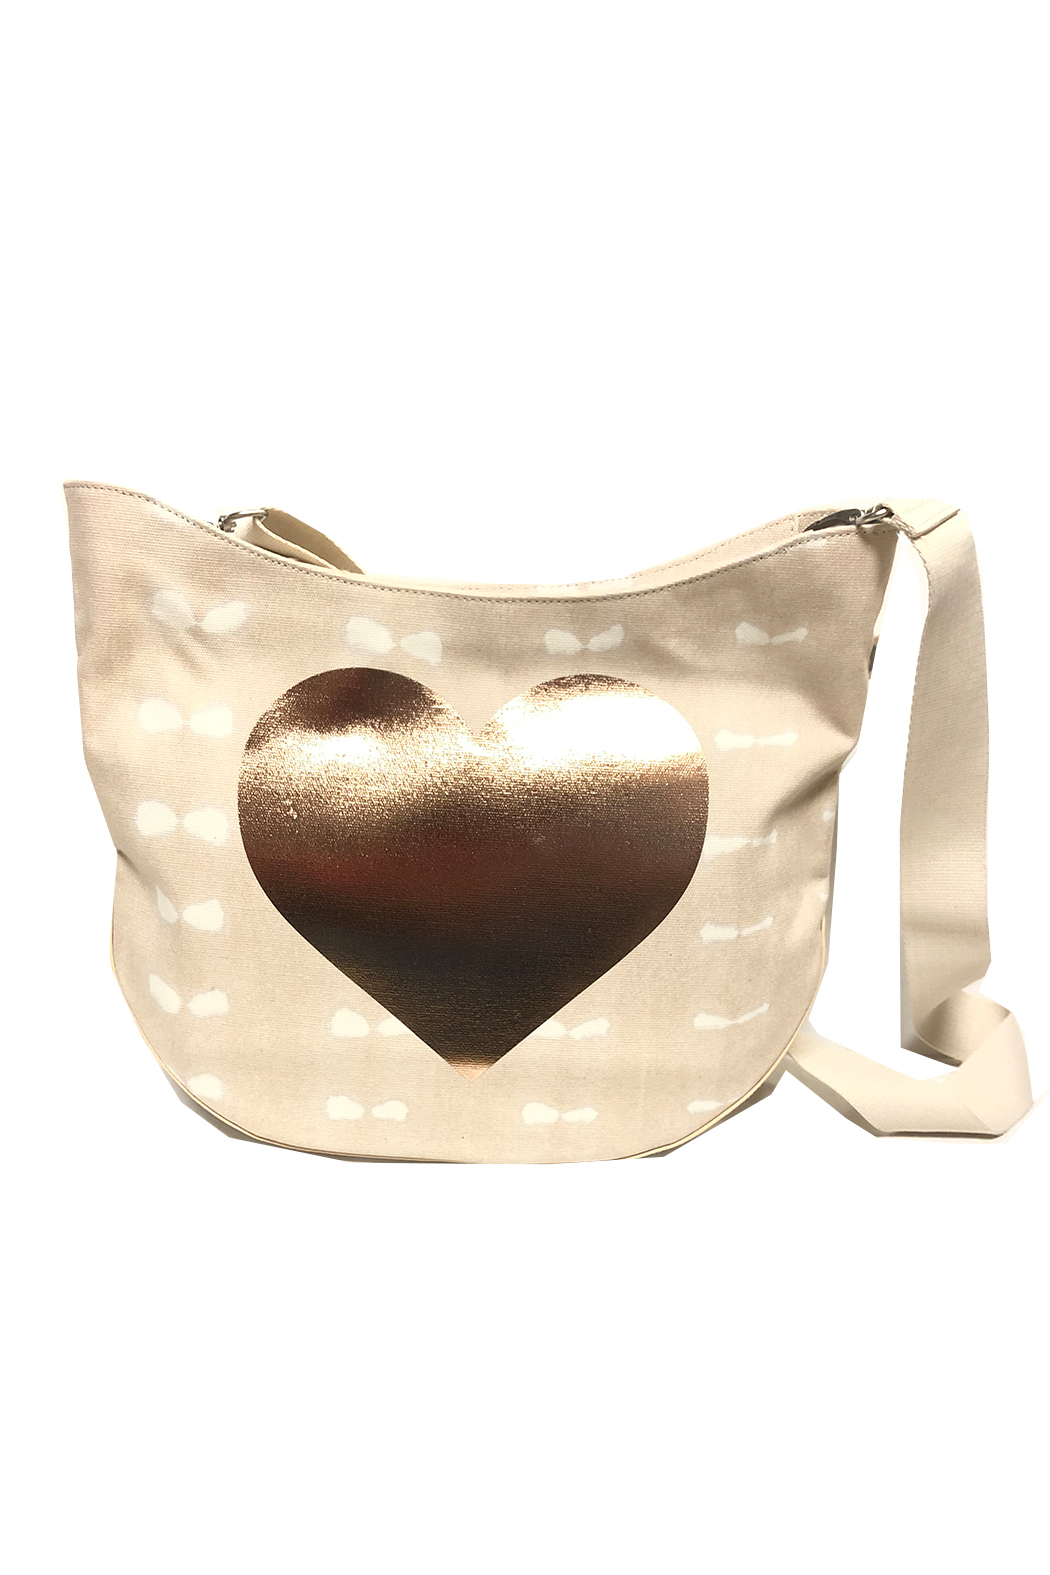 Quilted Koala Large City Bag - Stone Shibori with Rose Gold Heart - Front Cropped Image